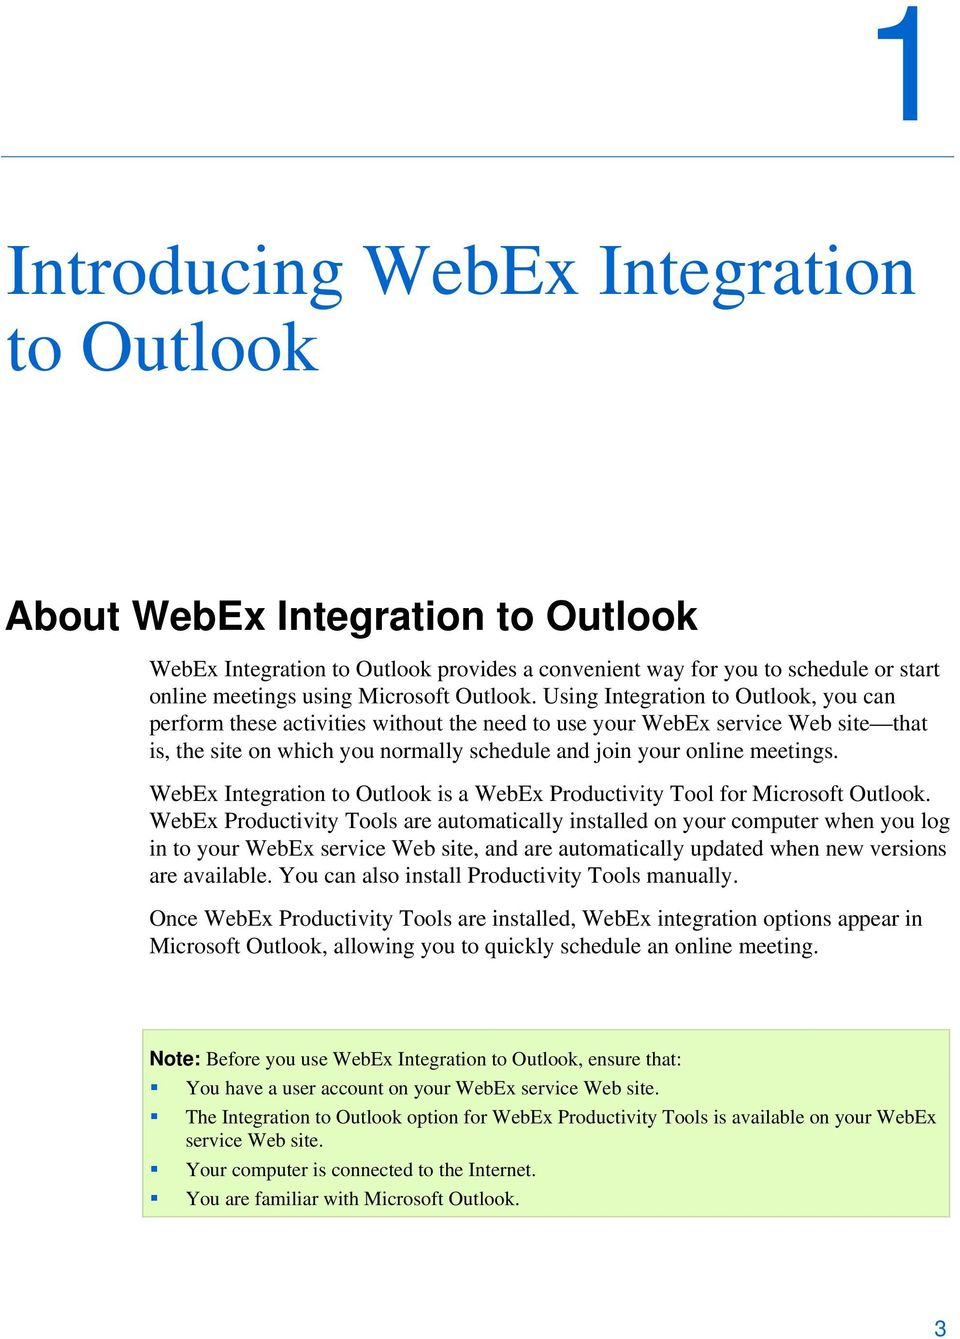 WebEx Integration to Outlook  User Guide - PDF